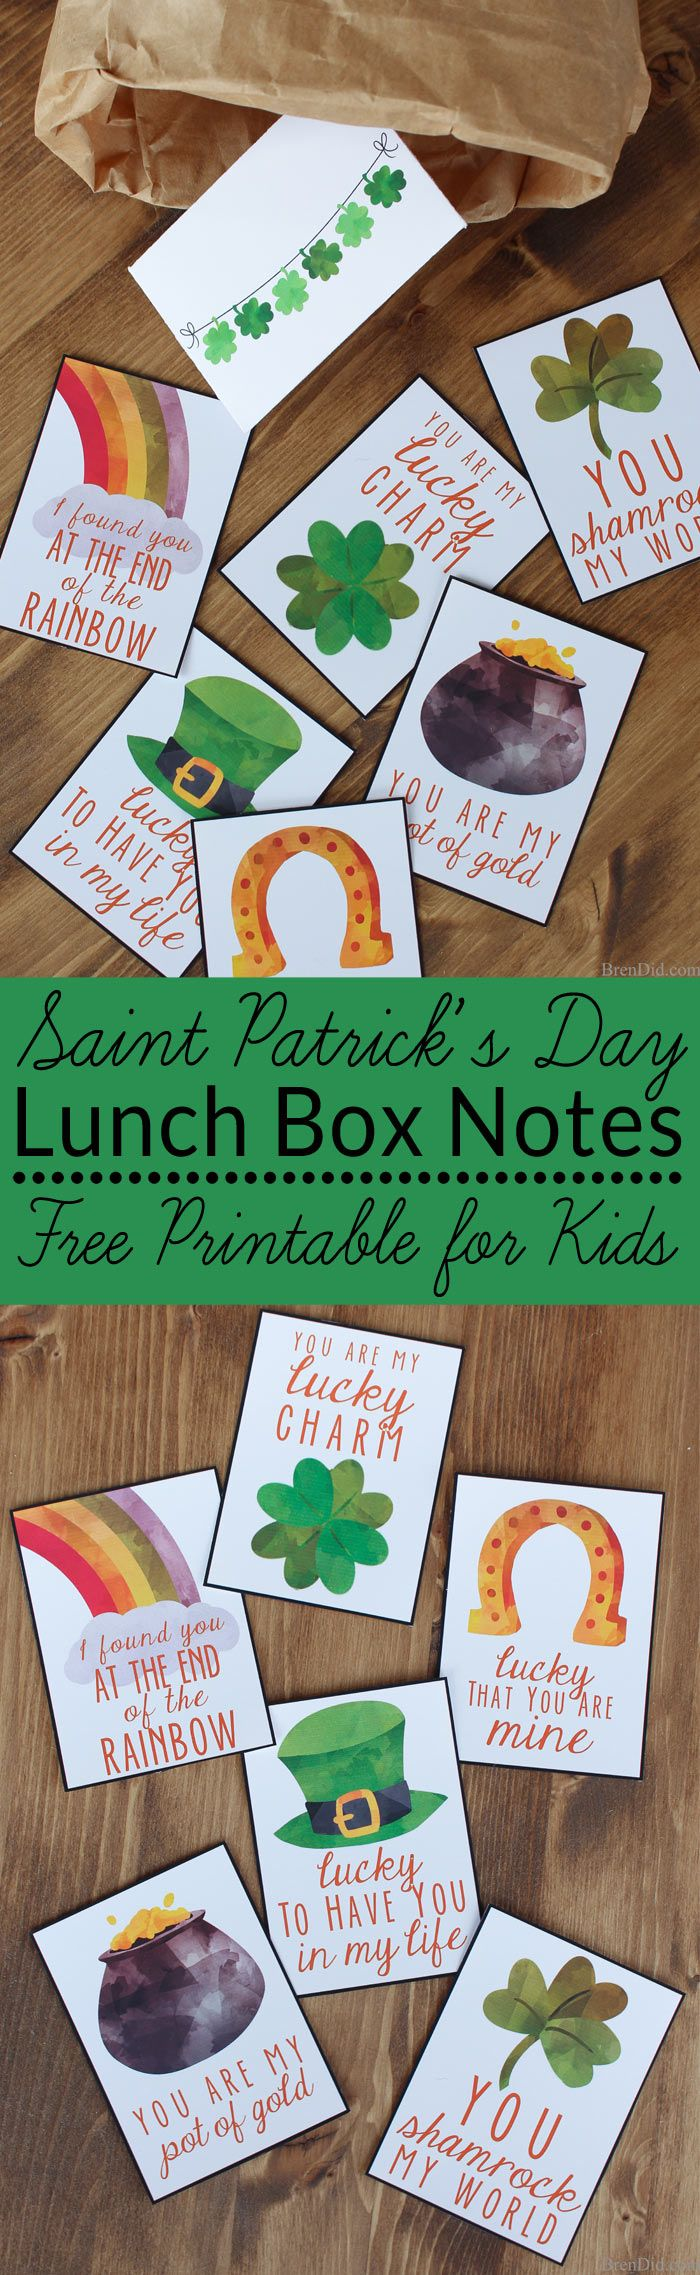 17 Best Ideas About Lunch Box Notes On Pinterest